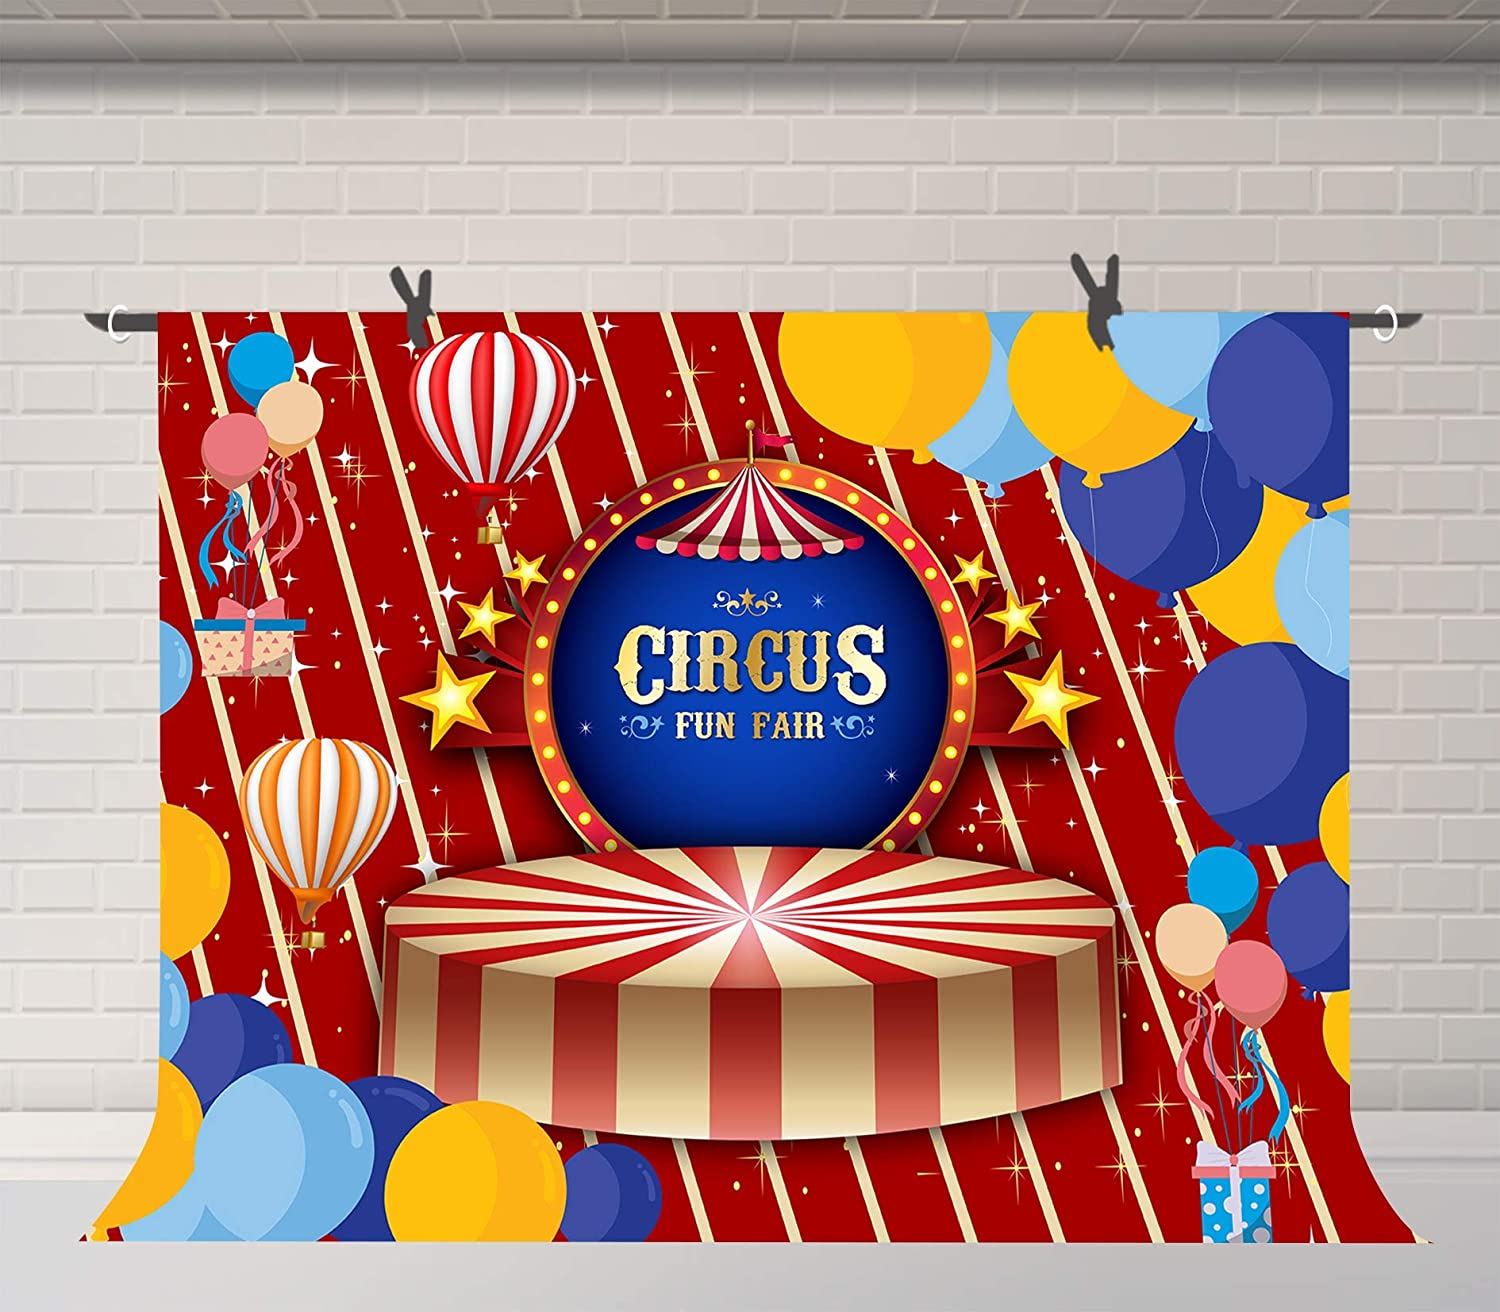 10x6.5ft Circus Clown Photography Backdrop Carnival Photos Booth Background Props Murals WQFU085